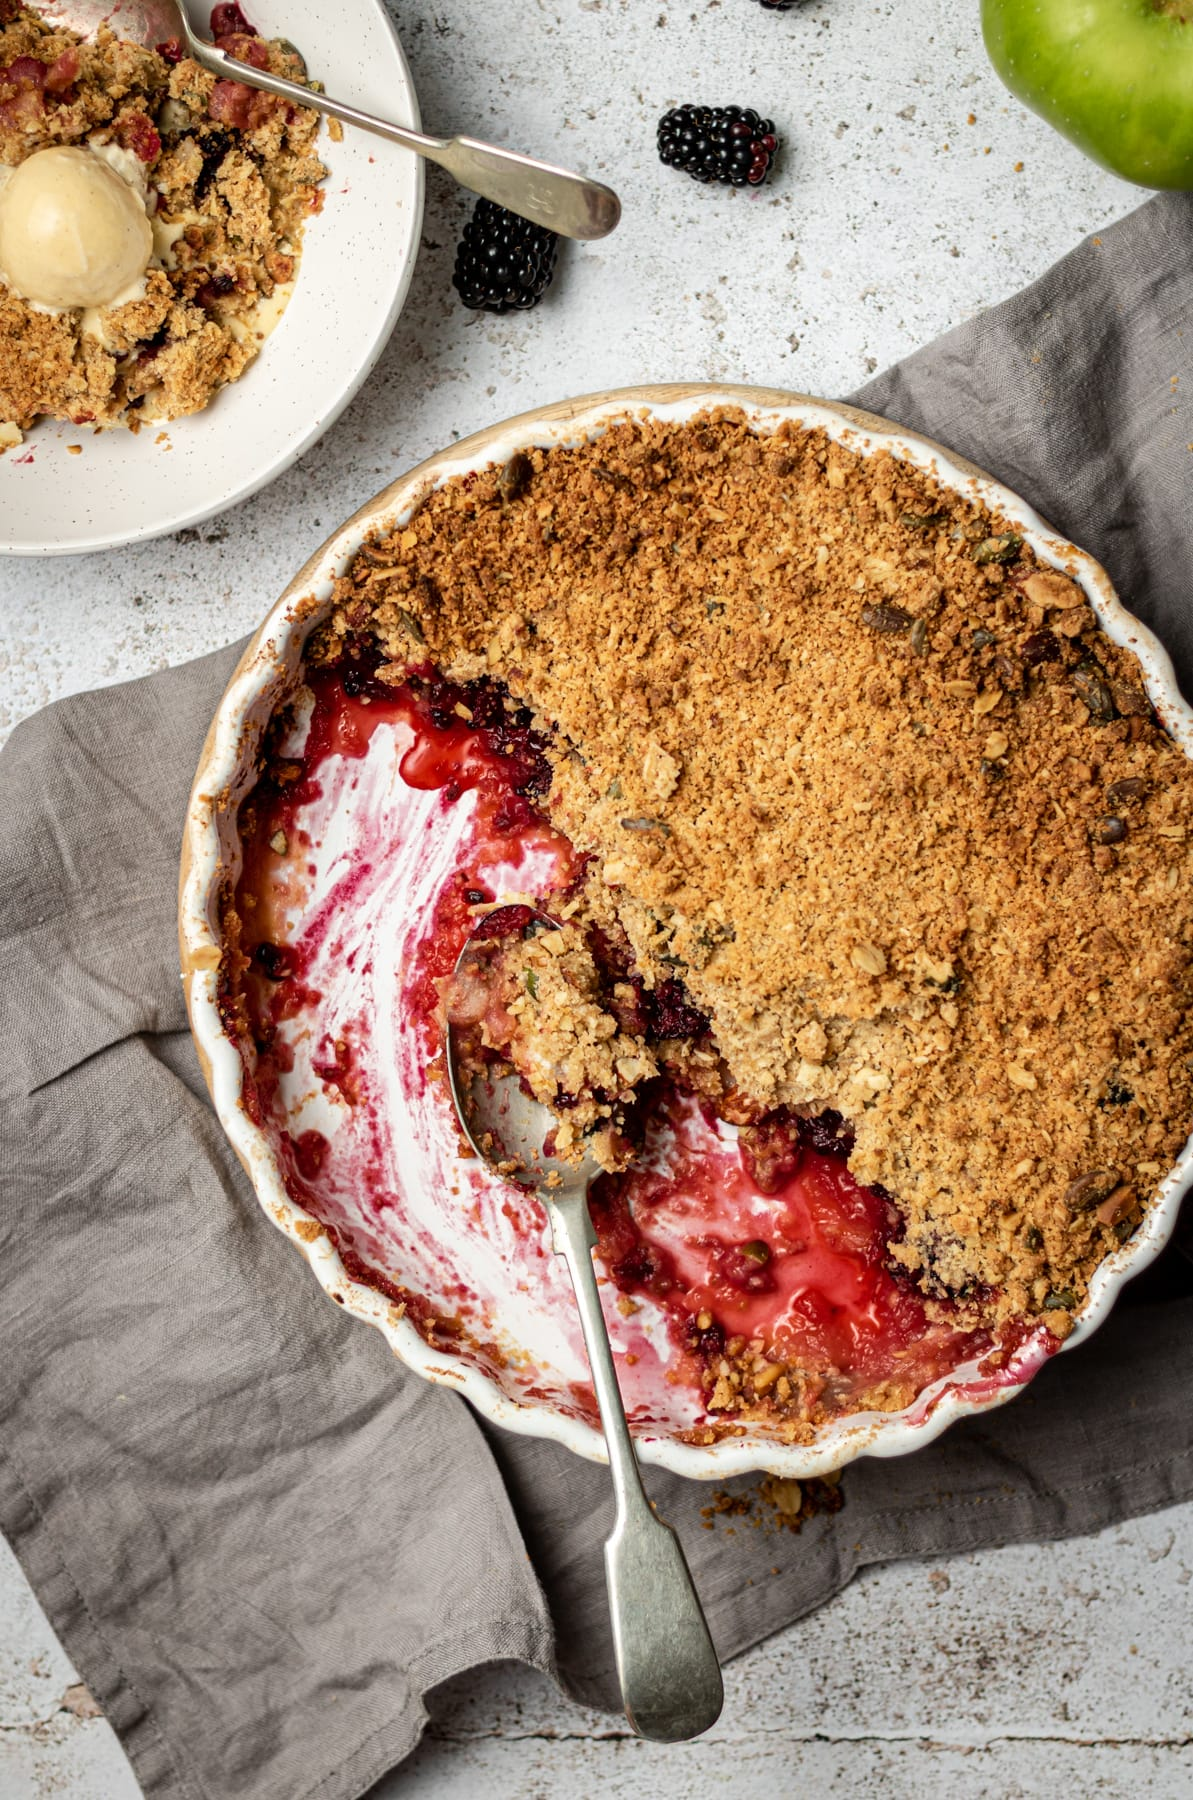 Crumble in pie dish with spoon